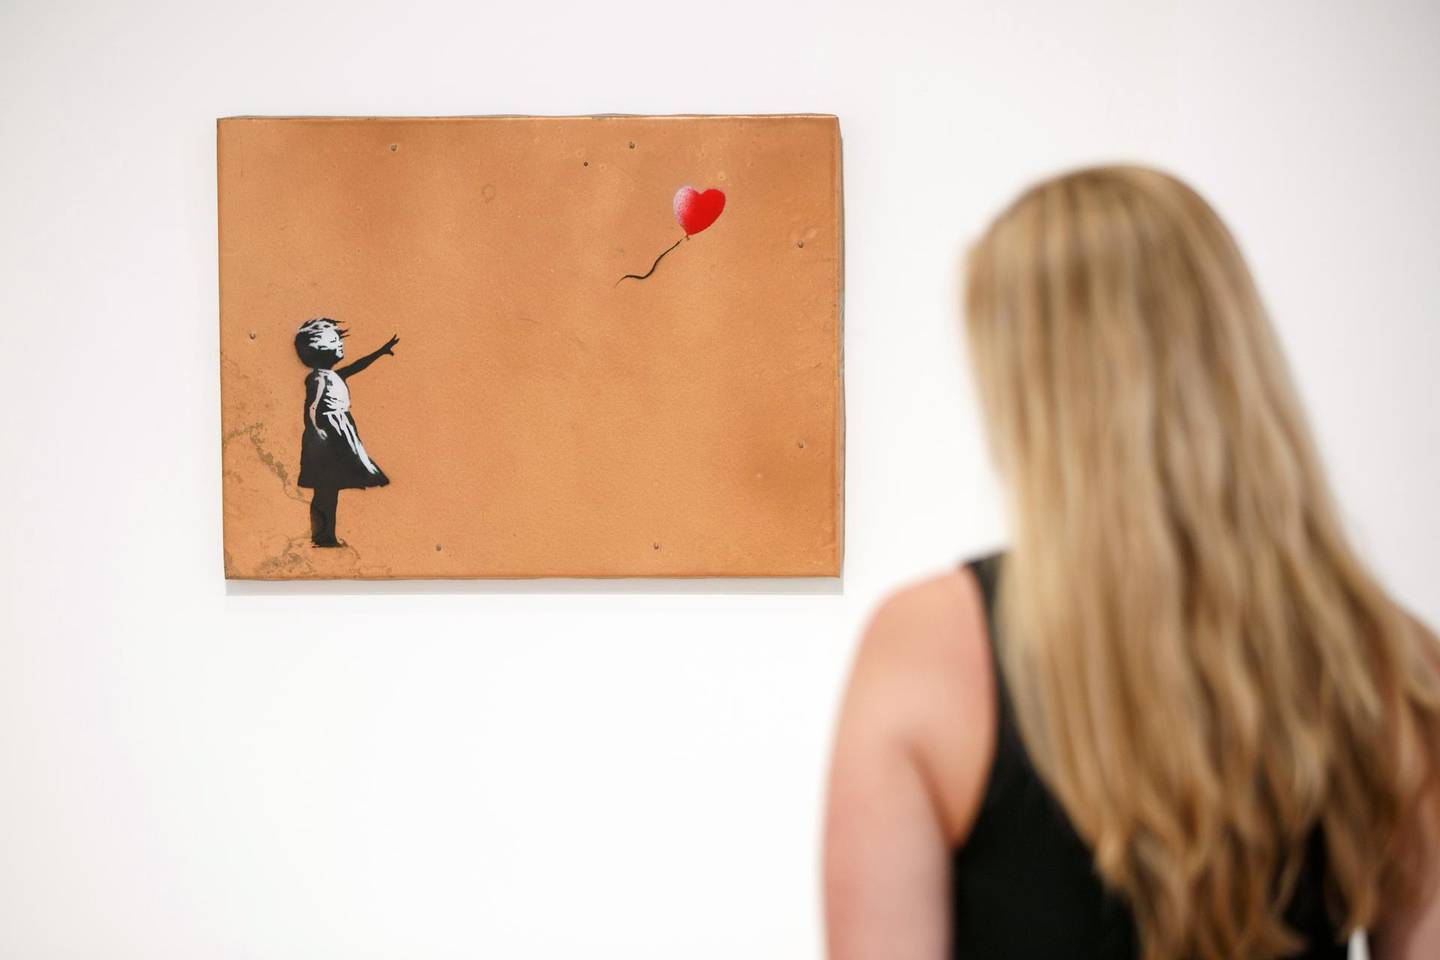 A gallery assistant poses with 'Girl with Balloon' 2006 artwork by Banksy at Lazinc Gallery in London on July 11, 2018. The exhibition opens to the public on July 12, 2018. / AFP PHOTO / Tolga AKMEN / RESTRICTED TO EDITORIAL USE - MANDATORY MENTION OF THE ARTIST UPON PUBLICATION - TO ILLUSTRATE THE EVENT AS SPECIFIED IN THE CAPTION